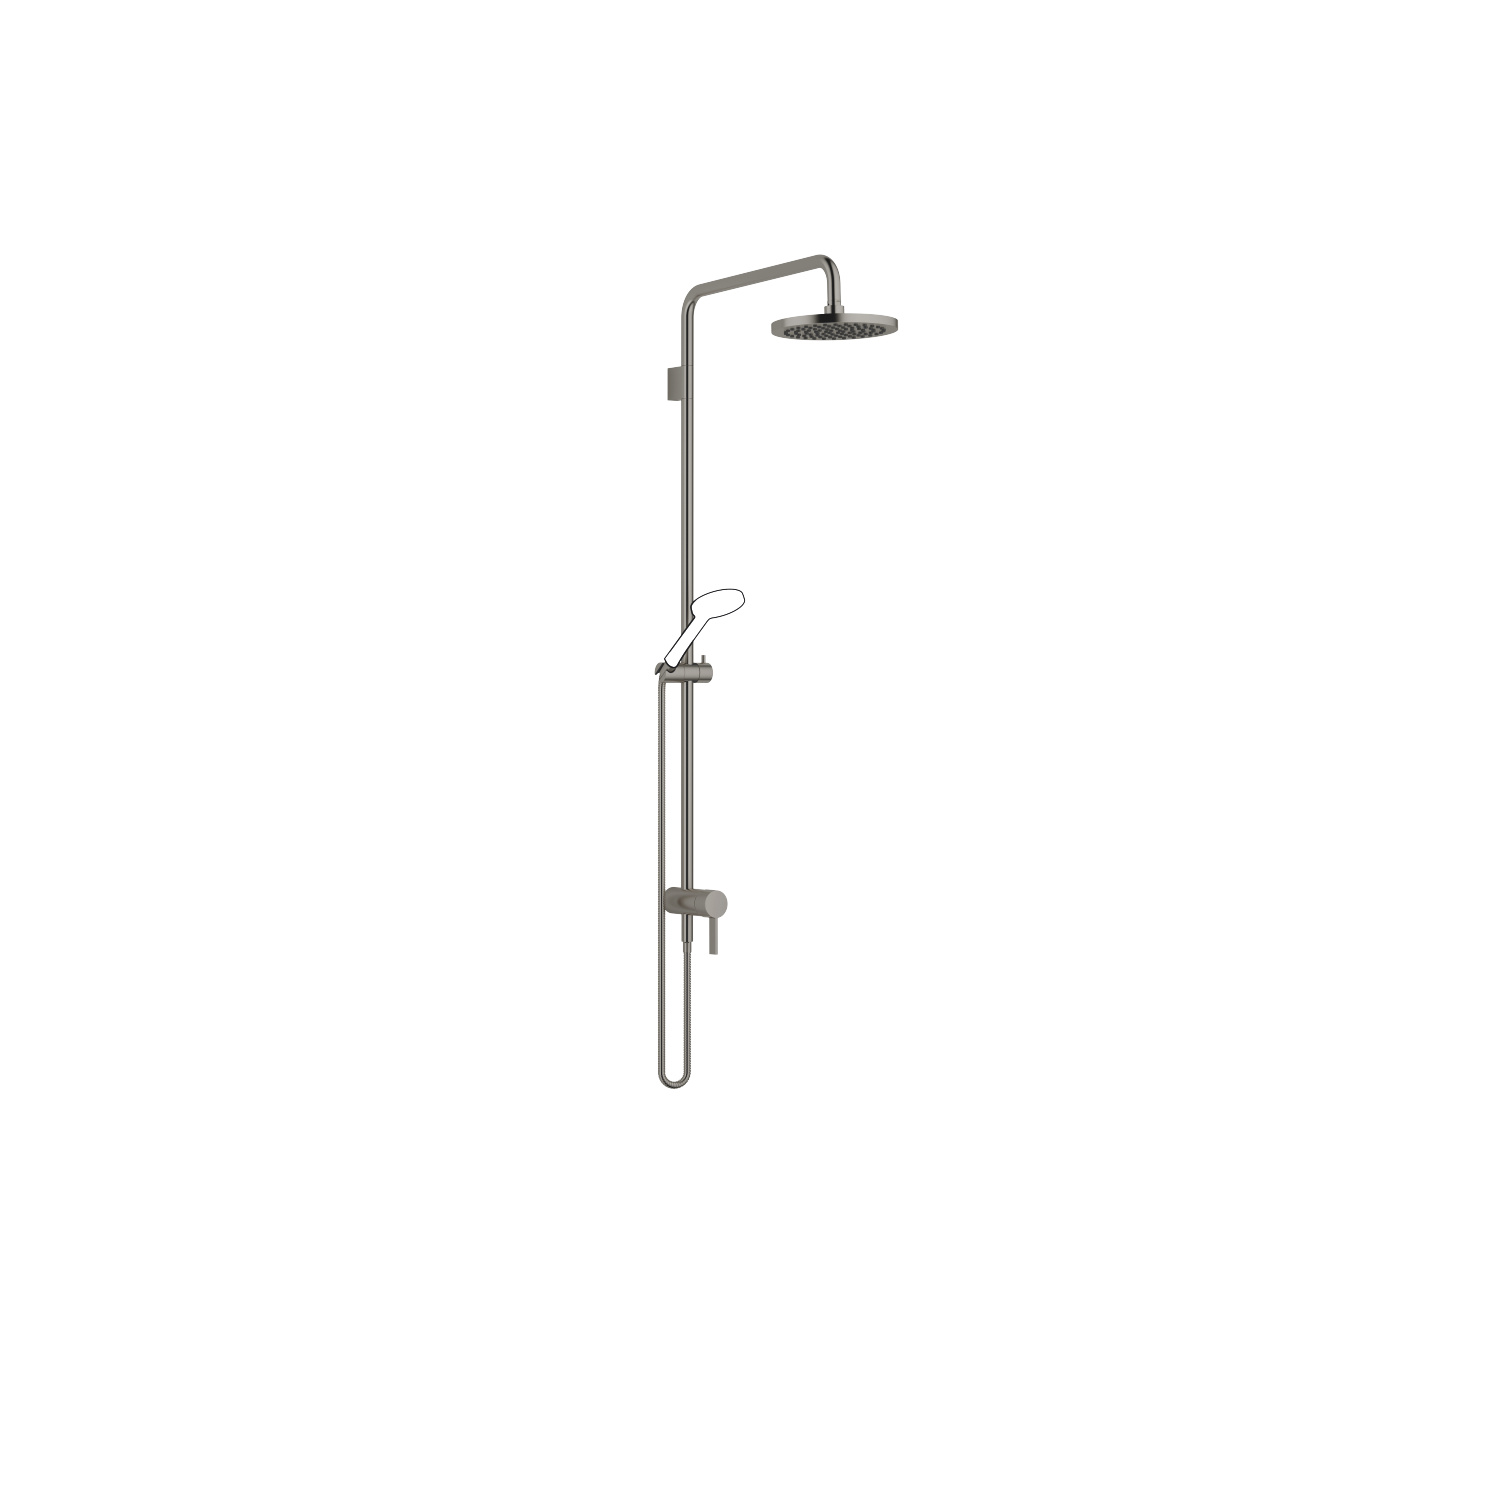 Showerpipe with single-lever shower mixer - Dark Platinum matt